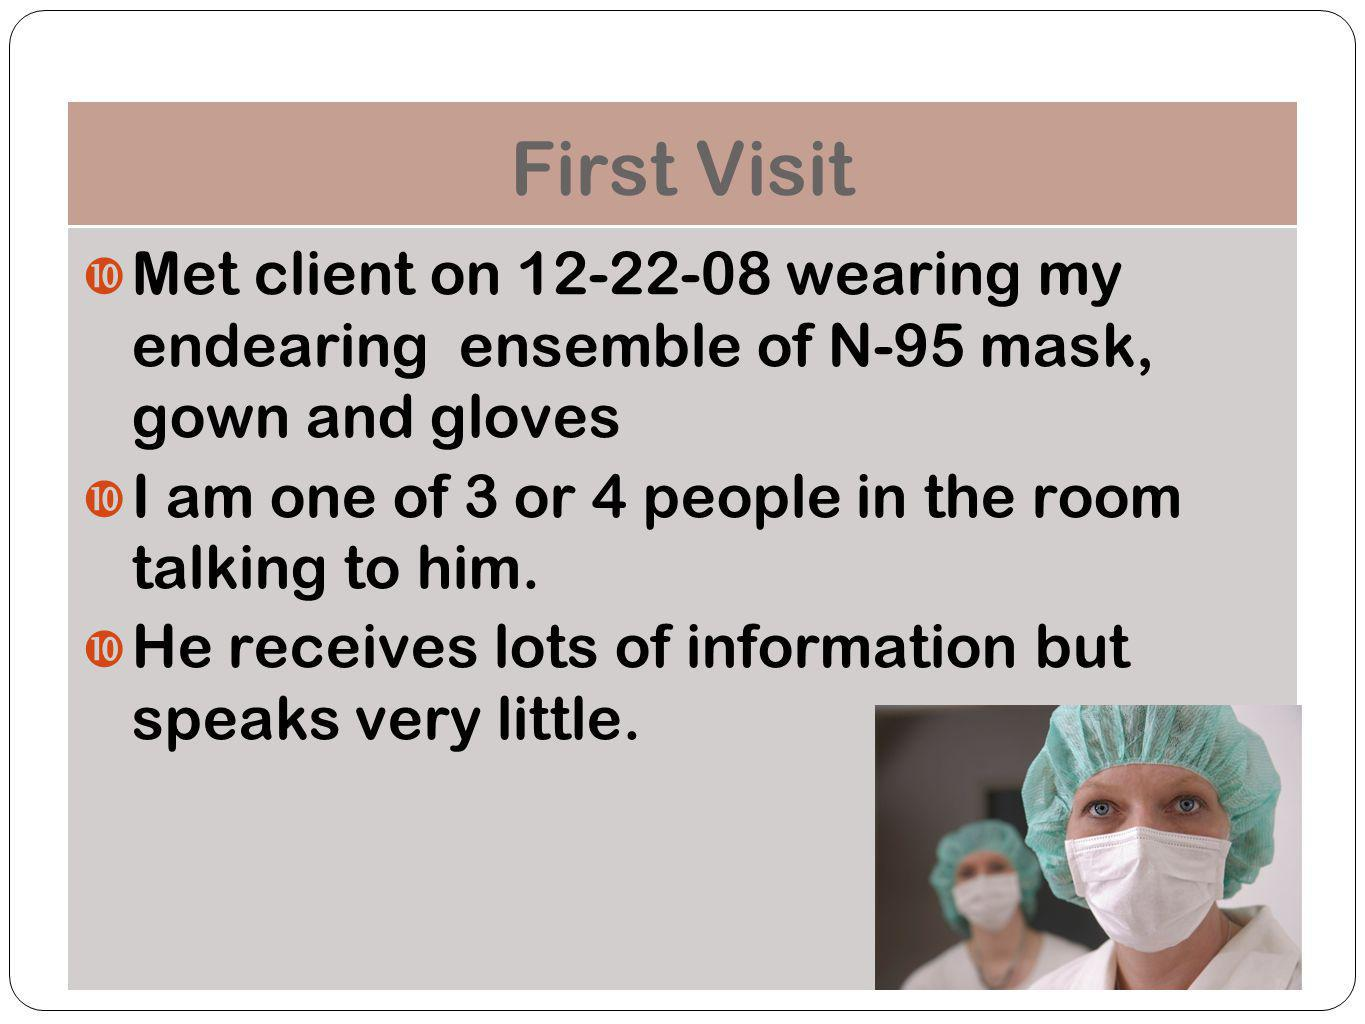 First Visit Met client on 12-22-08 wearing my endearing ensemble of N-95 mask, gown and gloves.